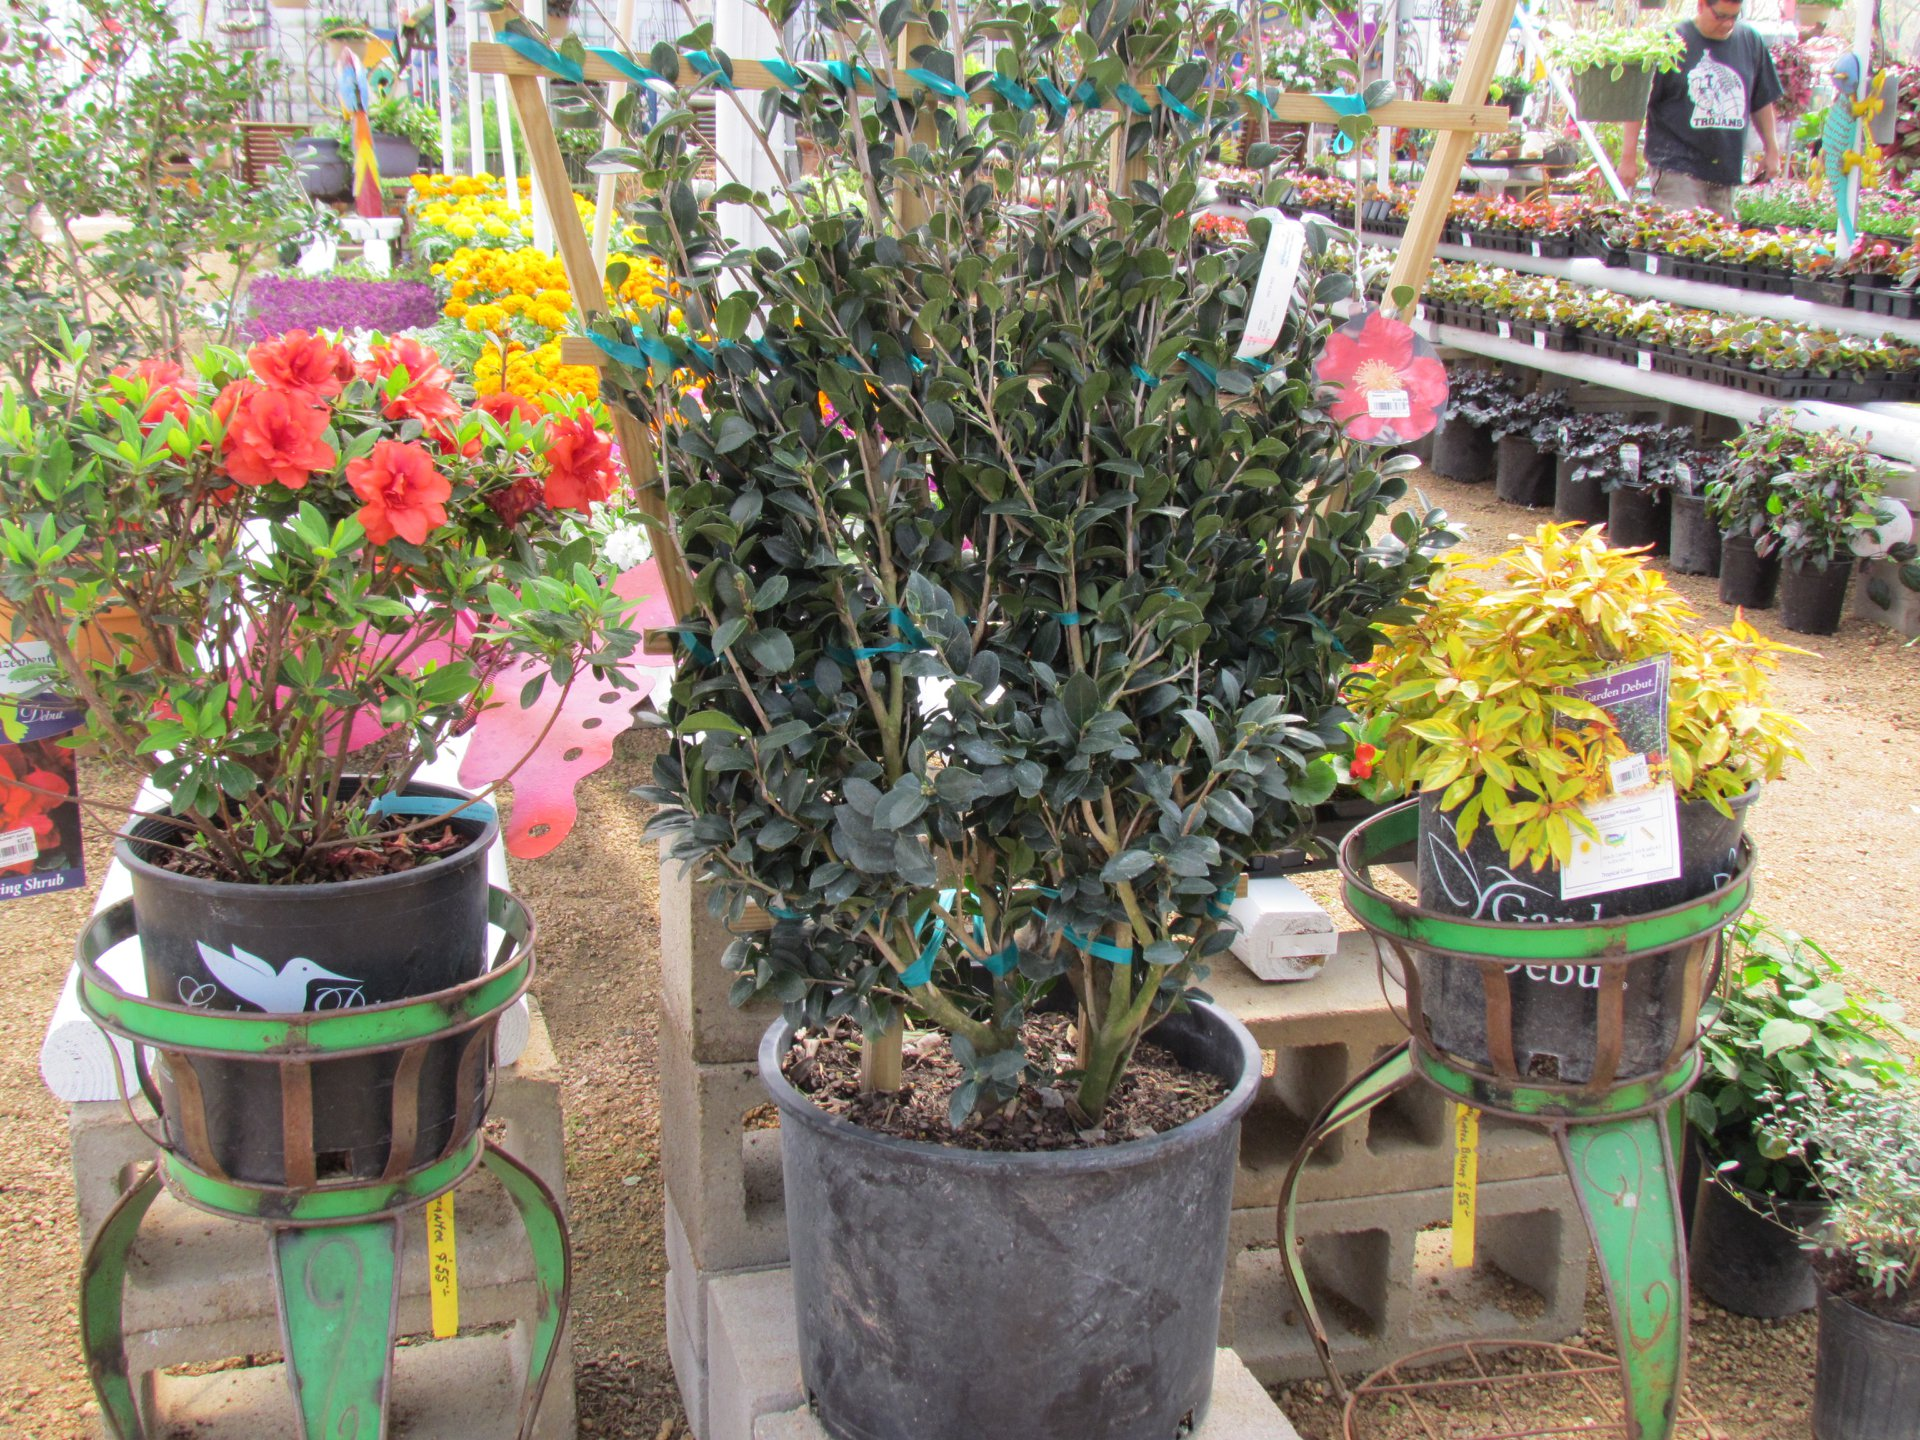 New Colorful Flats Of Flowers Bushes Vegetables And More At Jjs